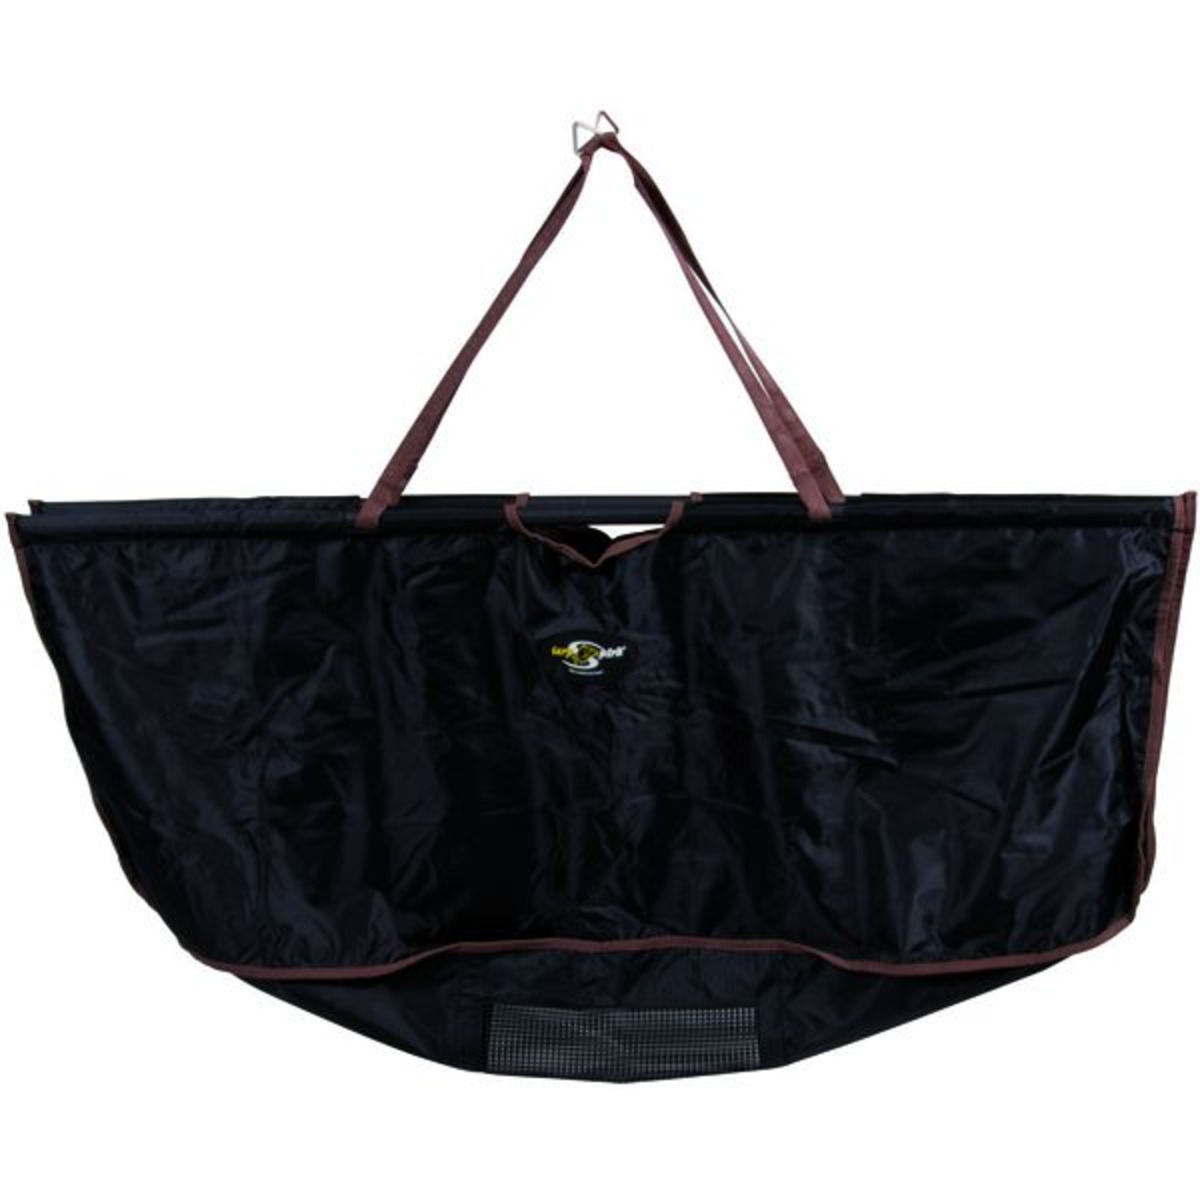 Carp Spirit Foldable Weigh Sling Luxe - 1.2 kg - 1.18x0.48 m